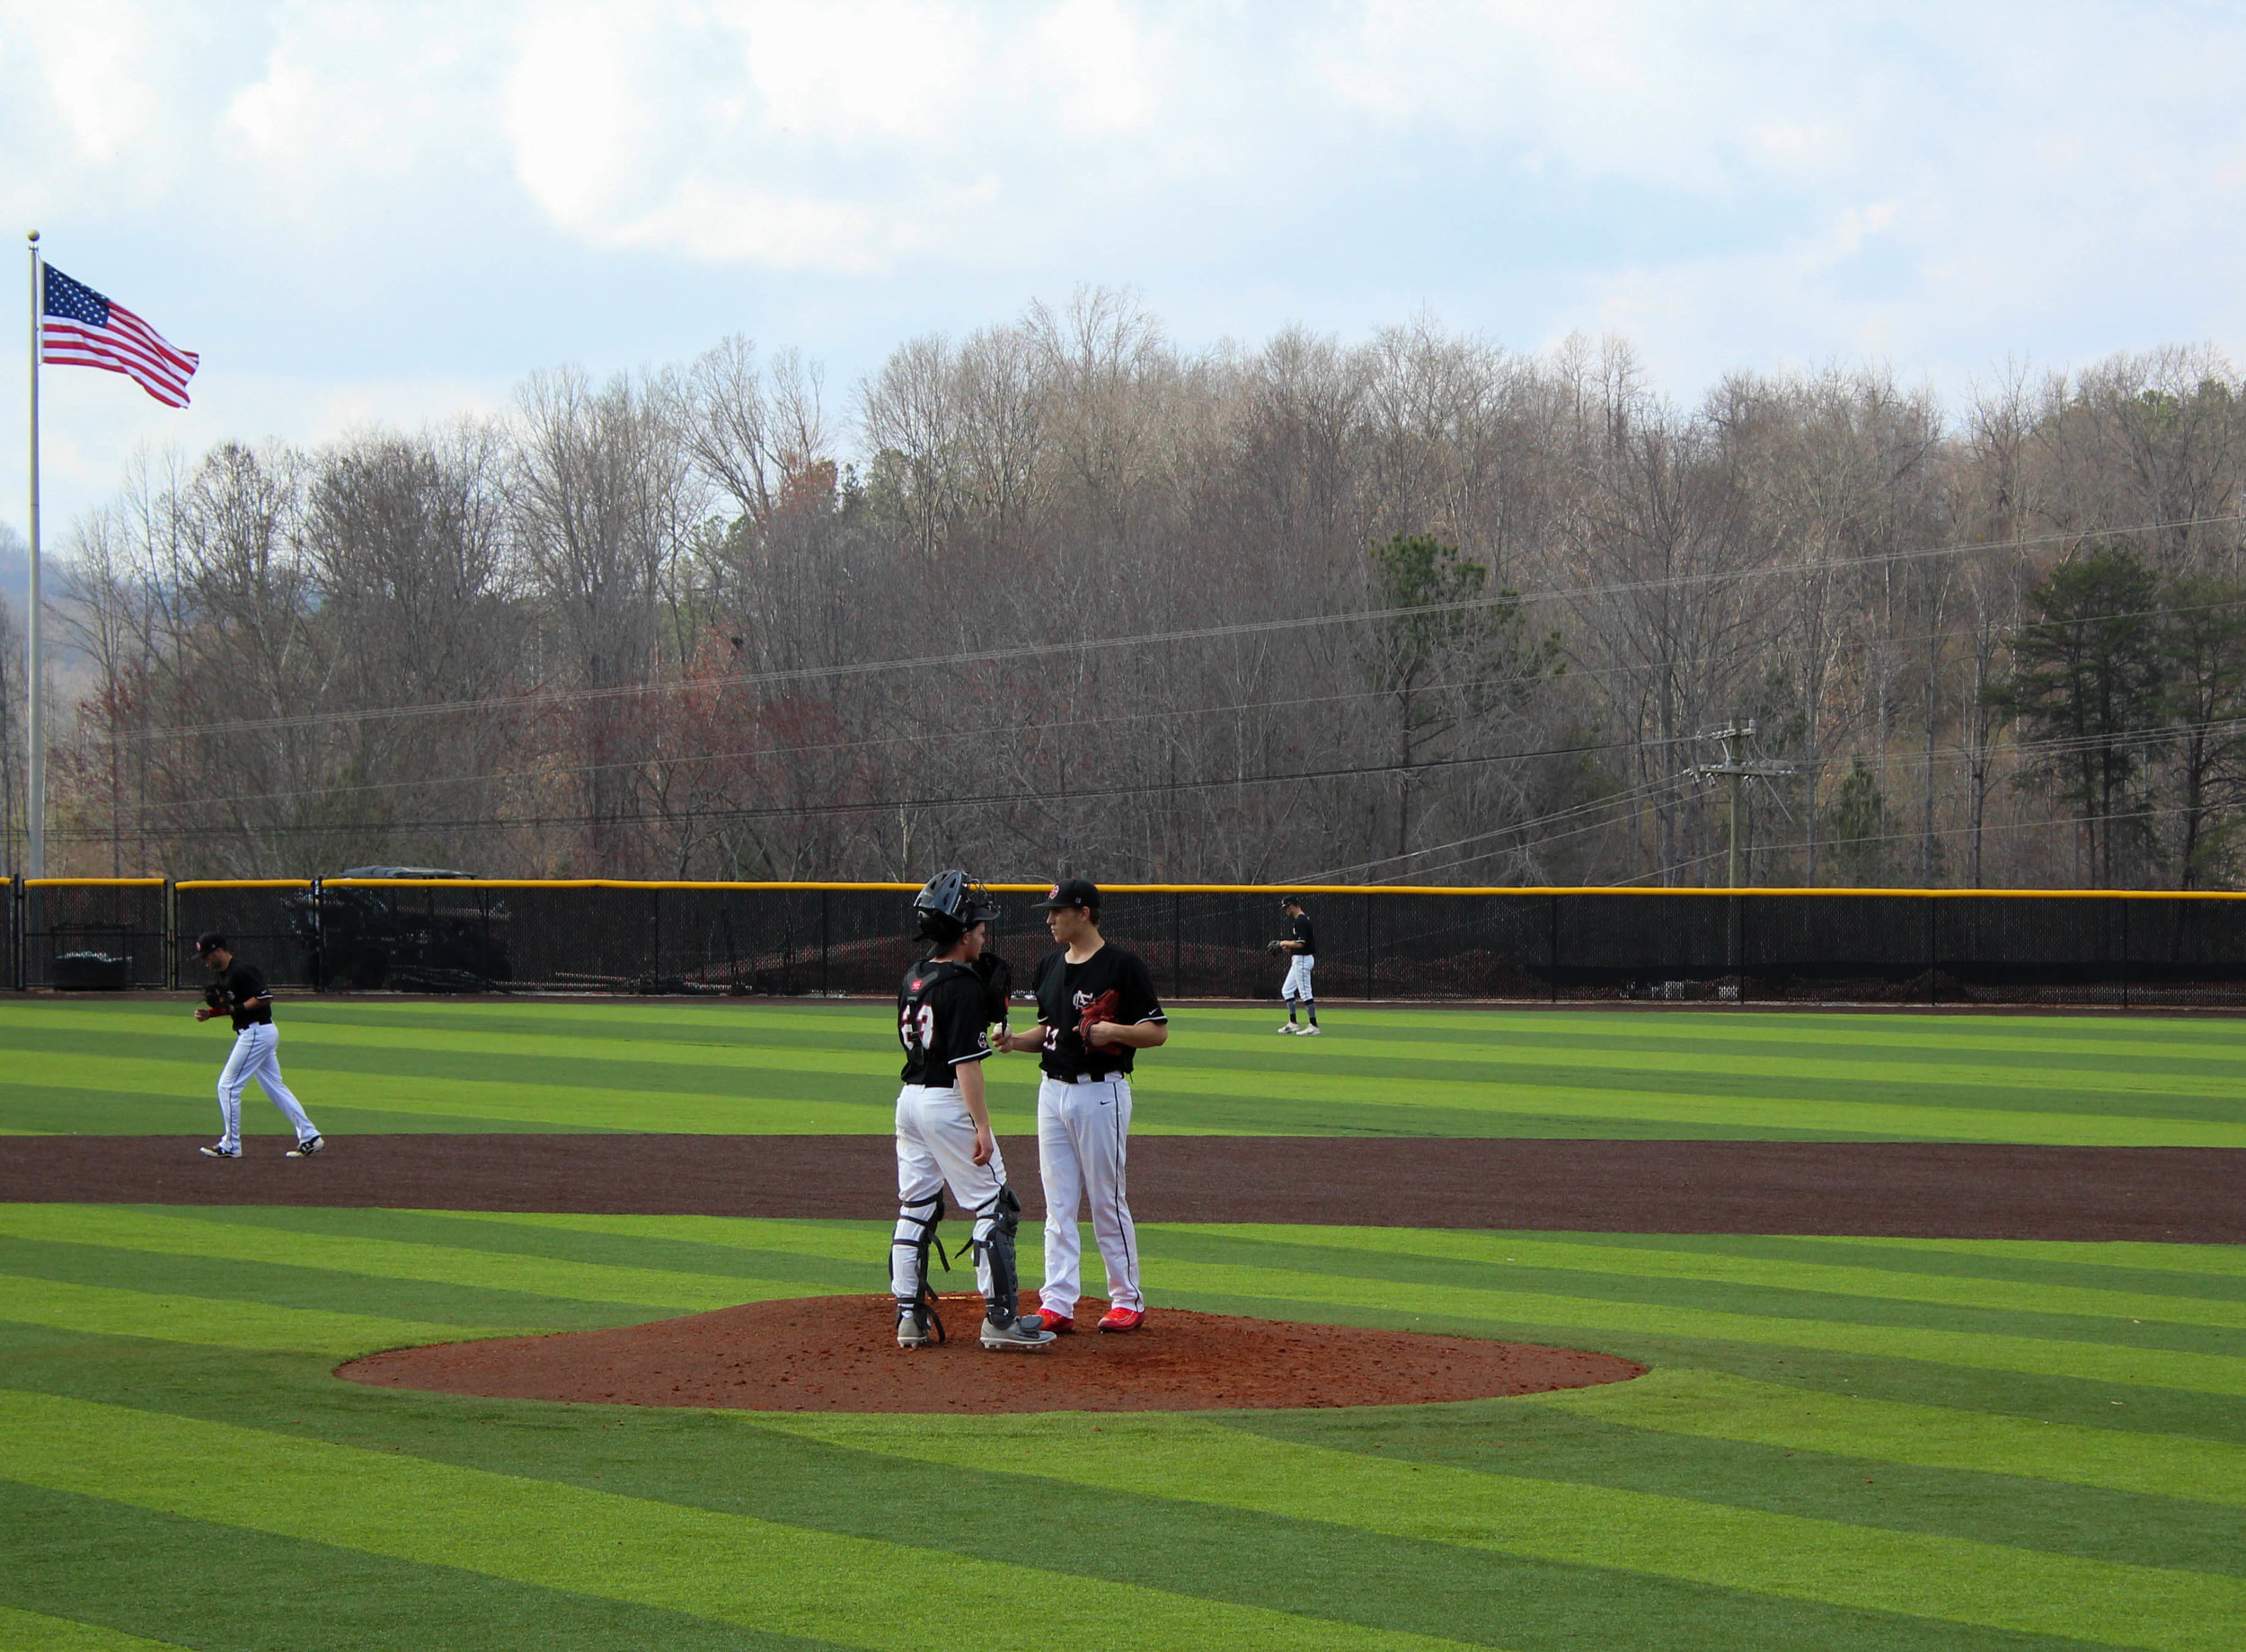 Lex Tuten (23) and Ethan Garner (27) talk on the mound about pitch strategy.